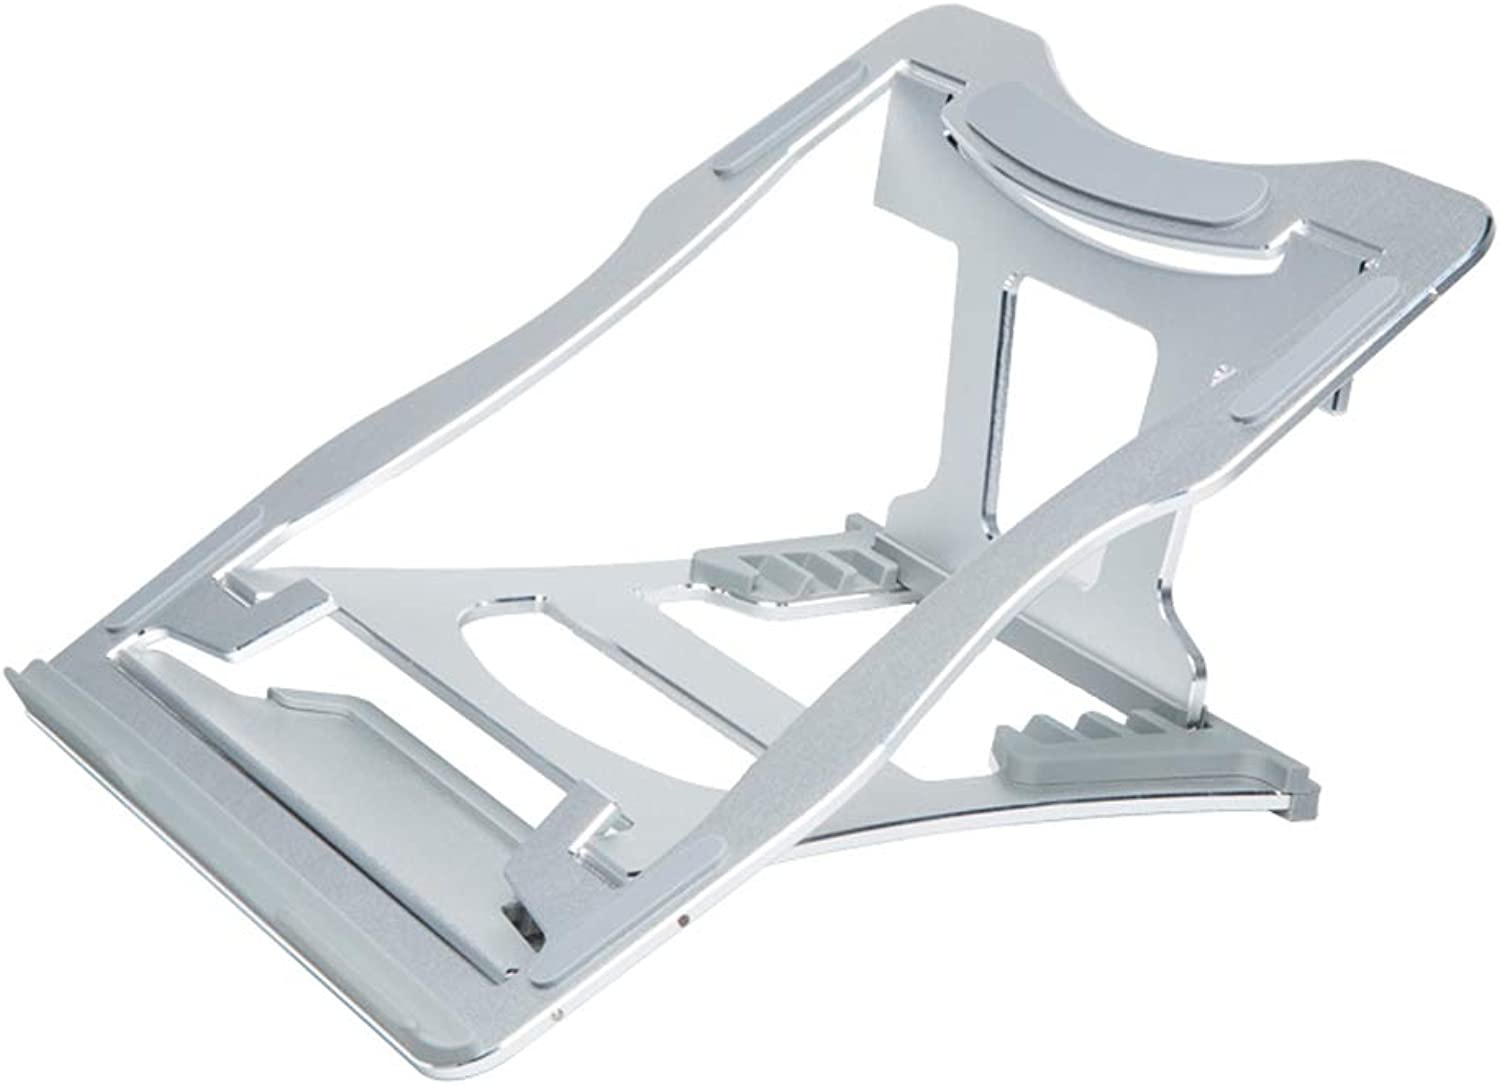 Laptop Stand - Aluminum Silicone, 6-Speed Height, 3 Open Ways, Simple Portable Foldable Lifting and Cooling Predection Cervical Spine Silicone Anti-Skid Heightening Frame - 3 colors Available